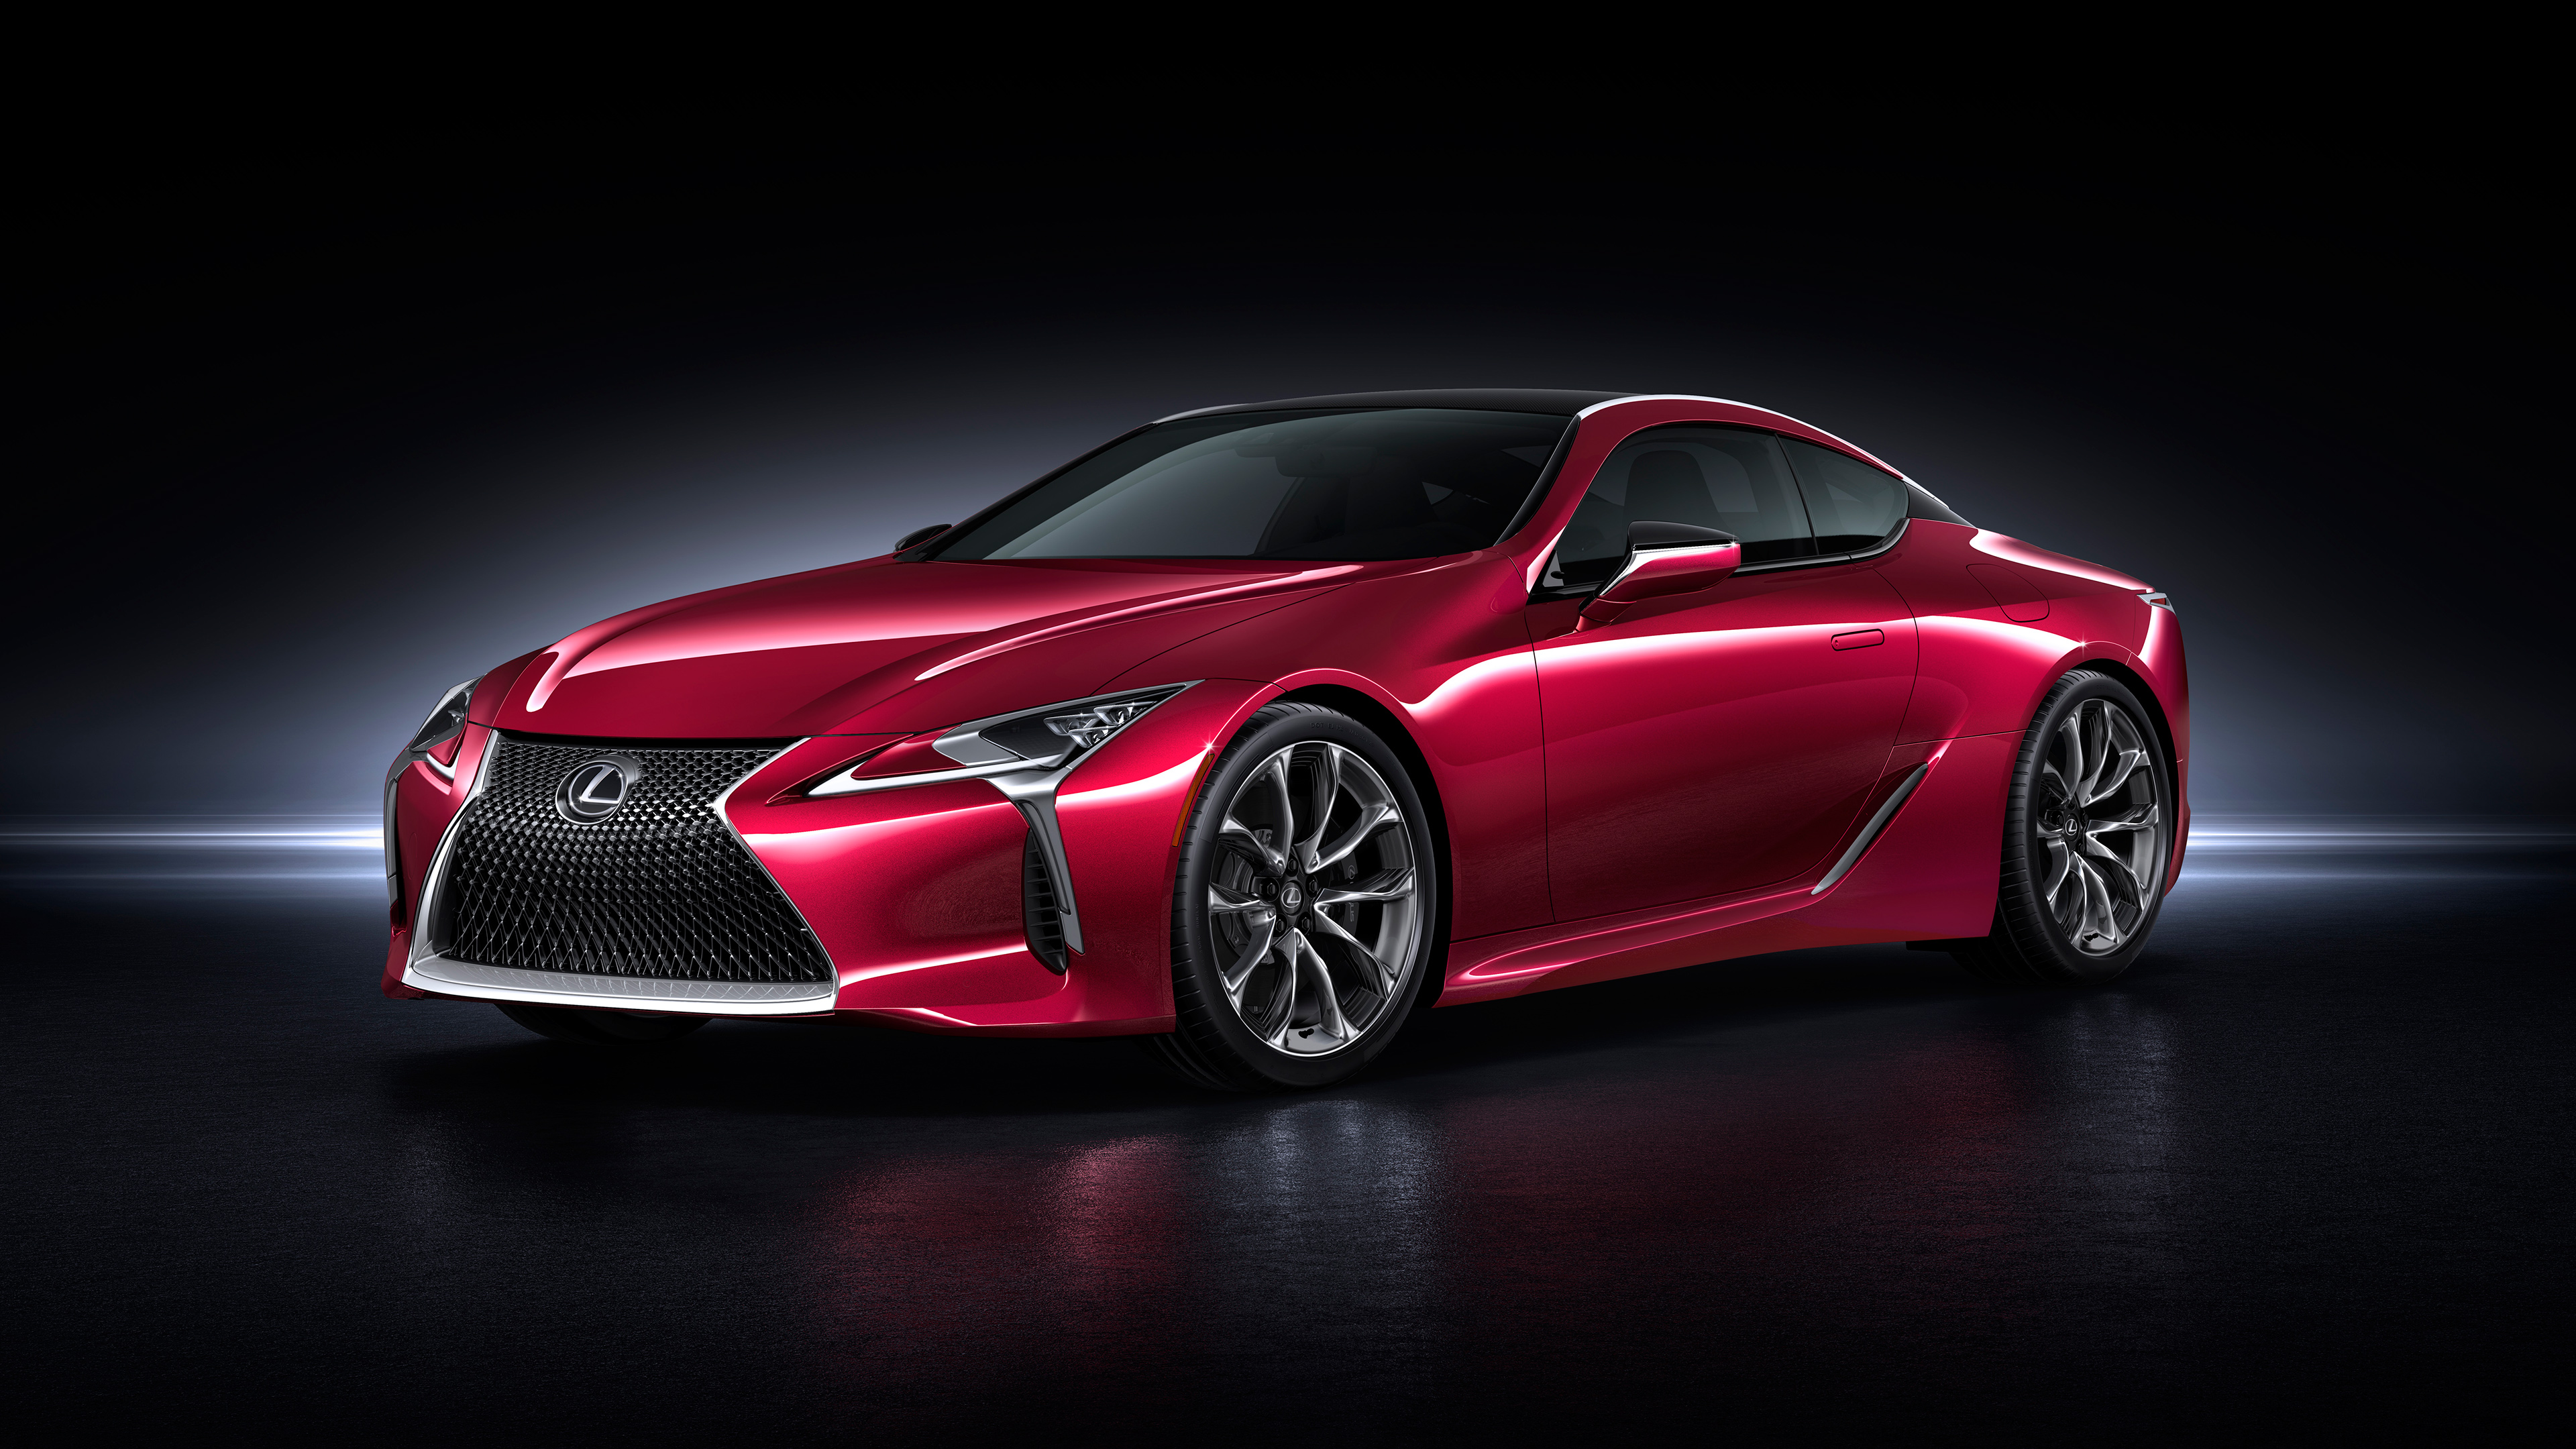 How Much Does A BMW Cost >> Lexus LC500 Wallpapers - Carfeed